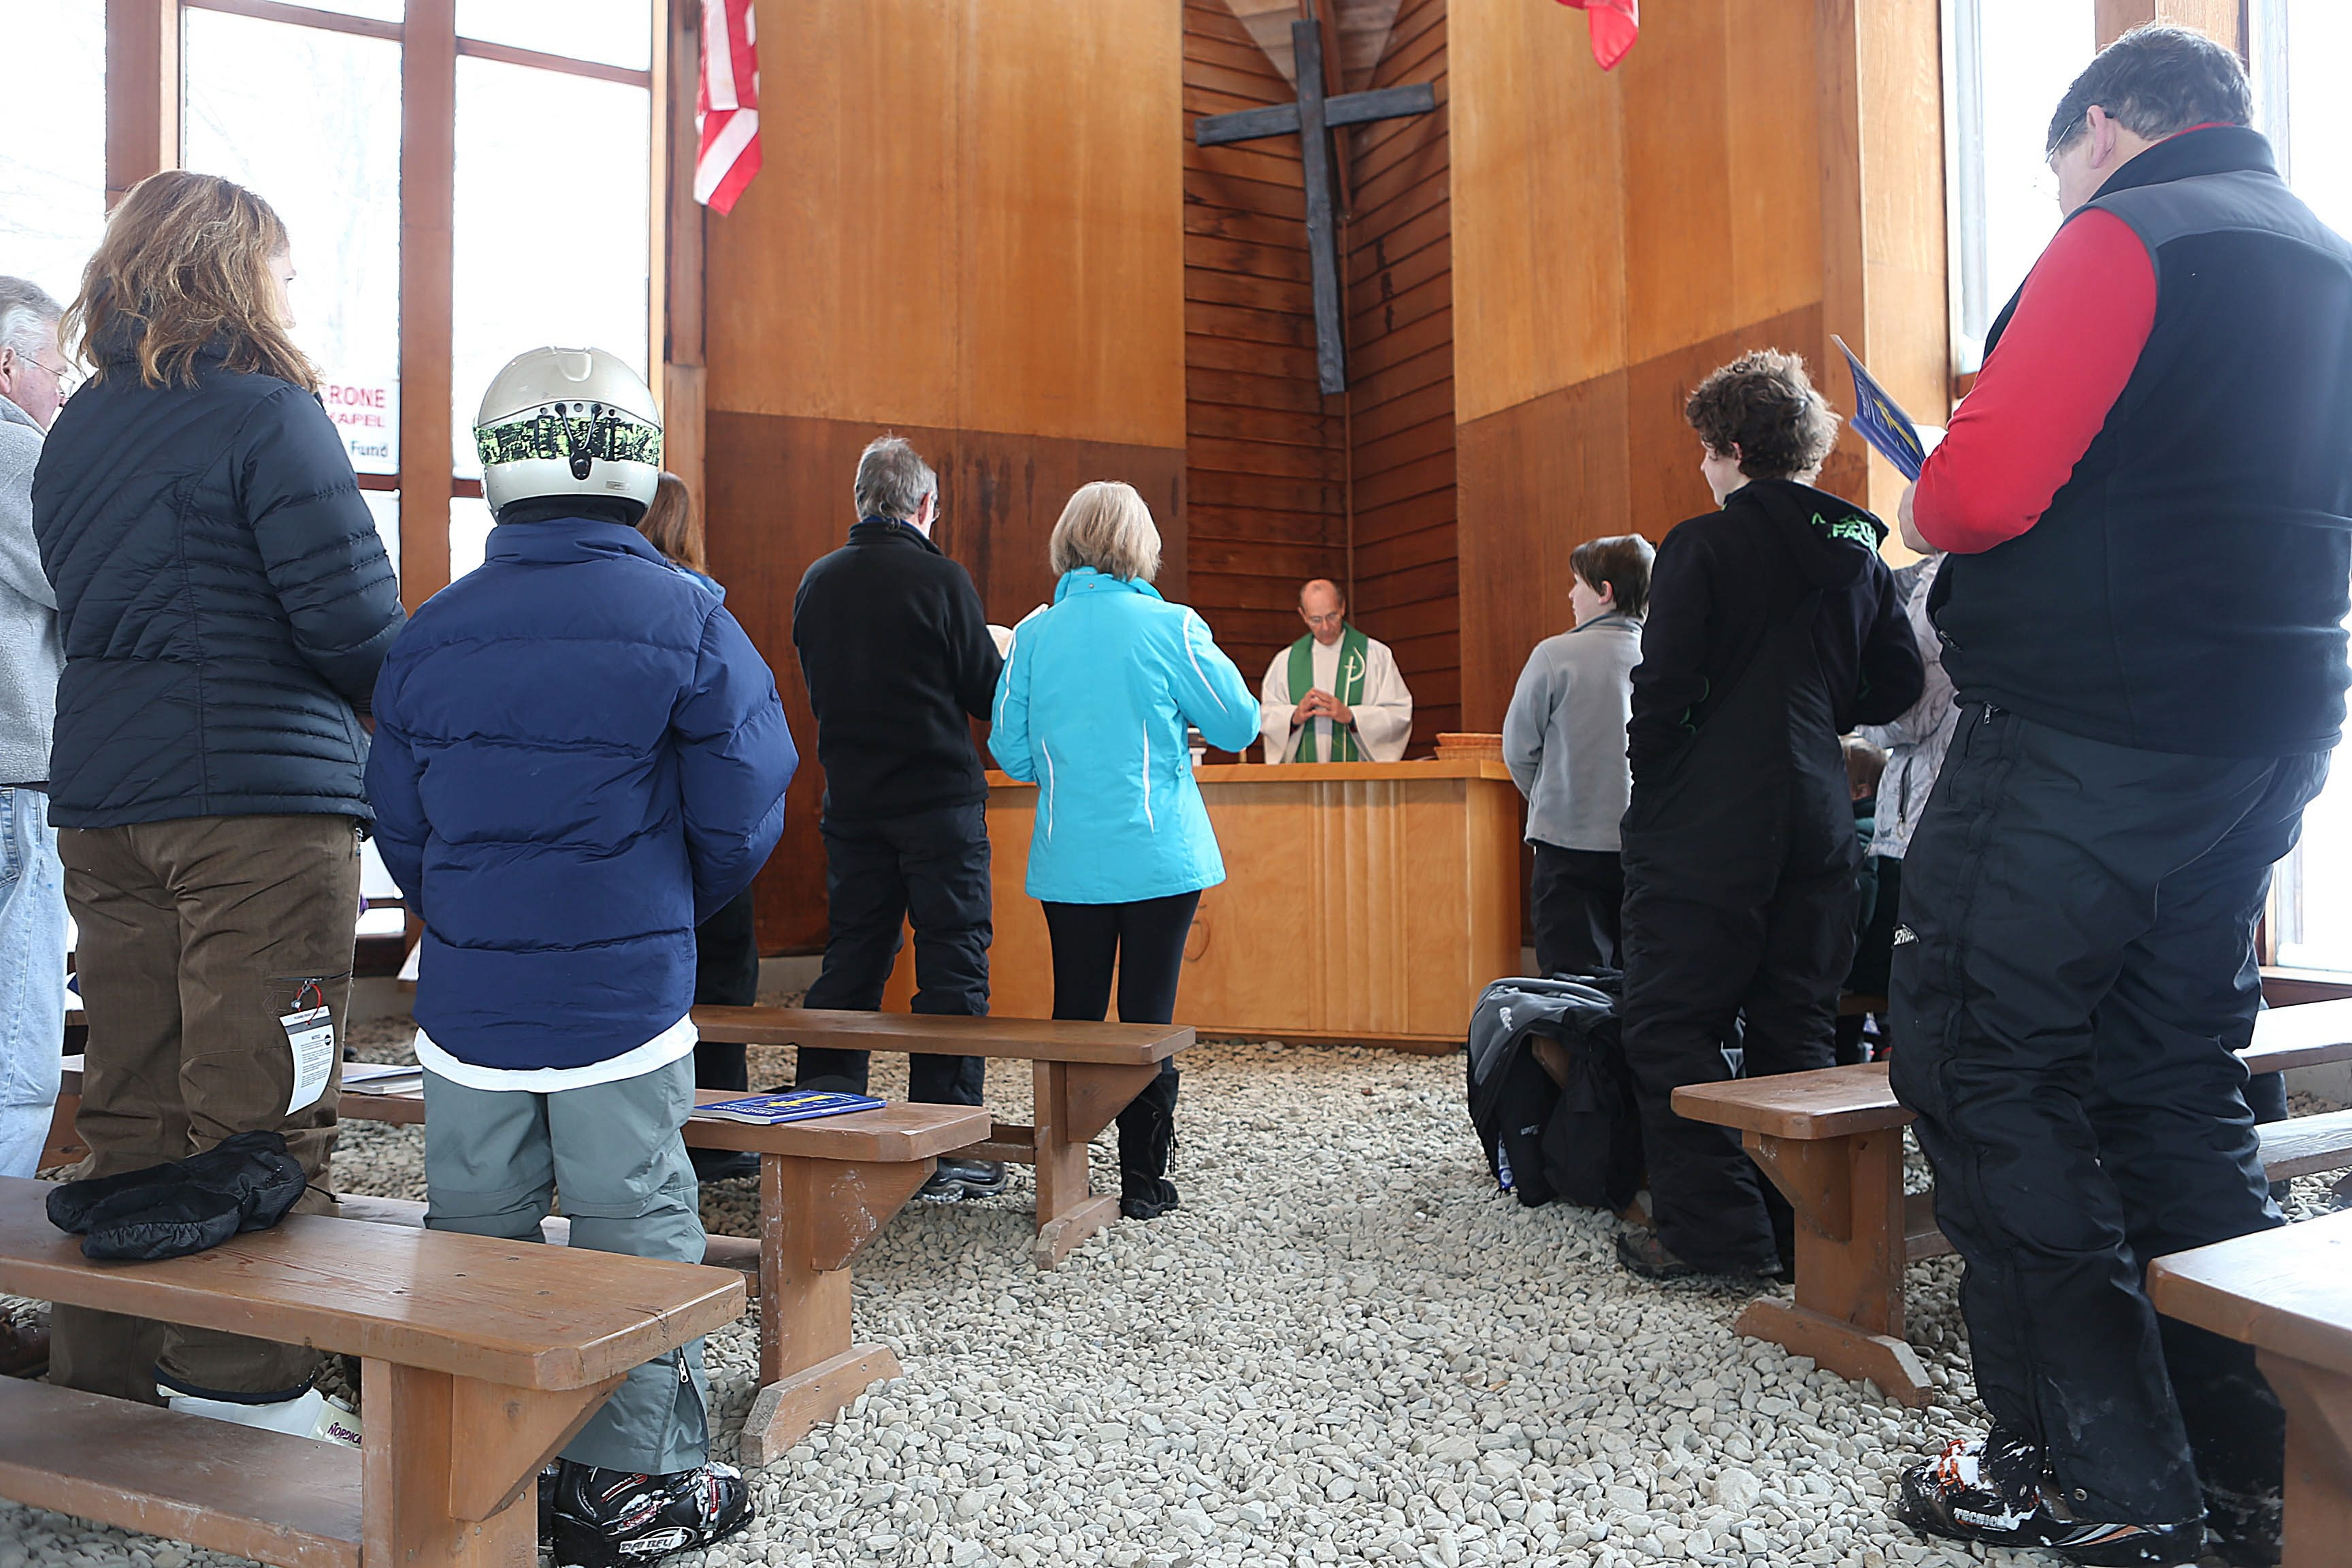 Skiers take a break from near-perfect ski conditions to worship at the Crone Memorial Chapel at Kissing Bridge. Built by members of the Glenwood Acres Ski Club, Mass is held every Sunday from January to early March.